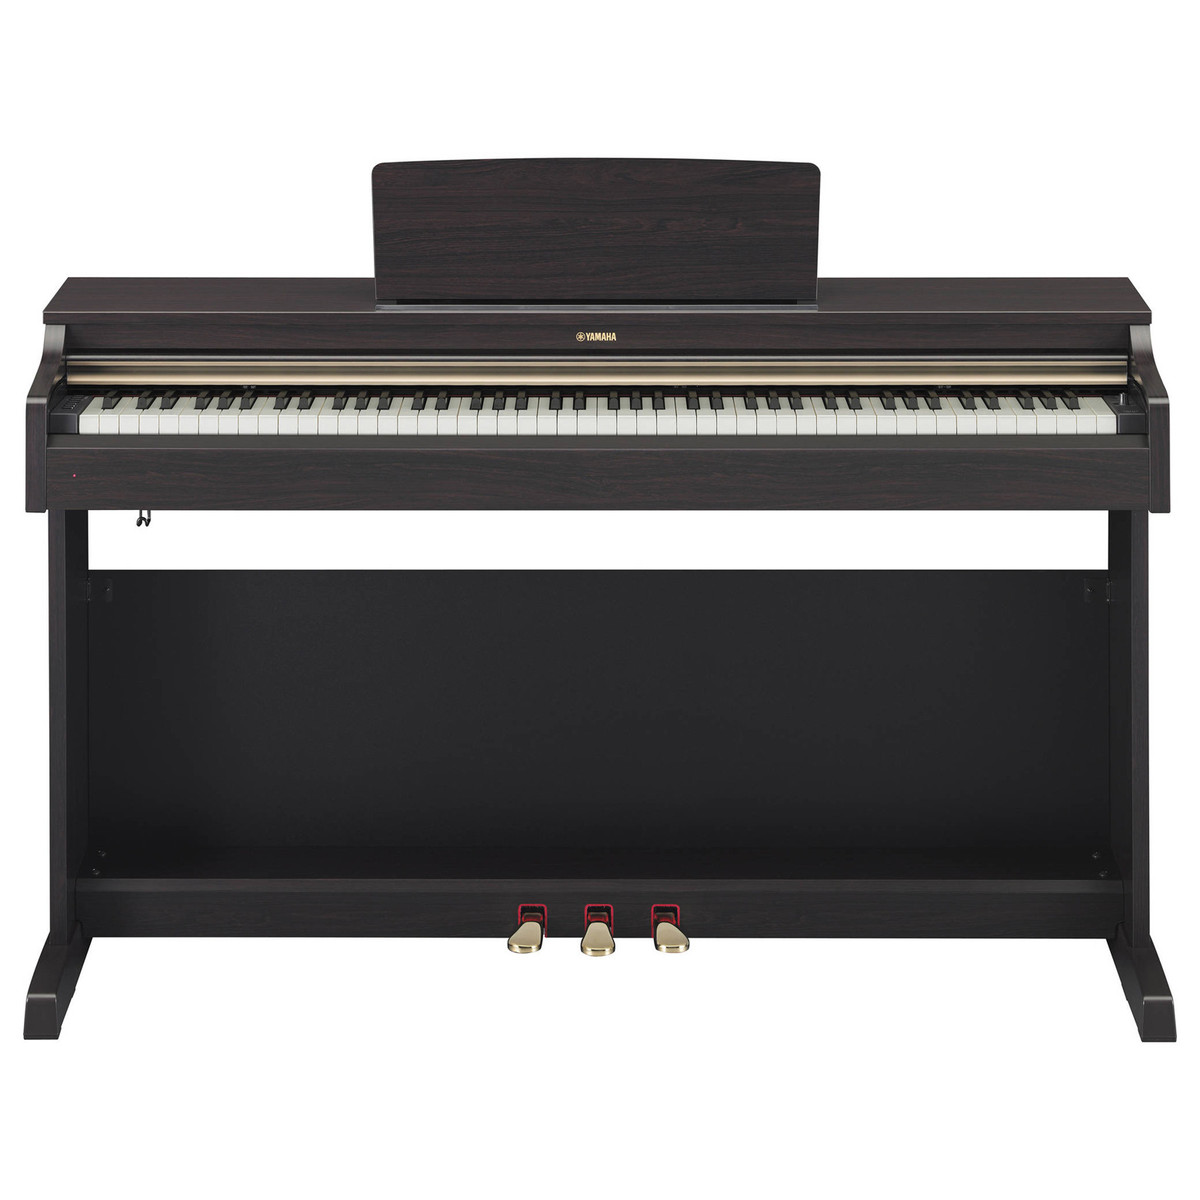 Yamaha arius ydp162 digital piano dark rosewood at for Yamaha ydp 162 digital piano